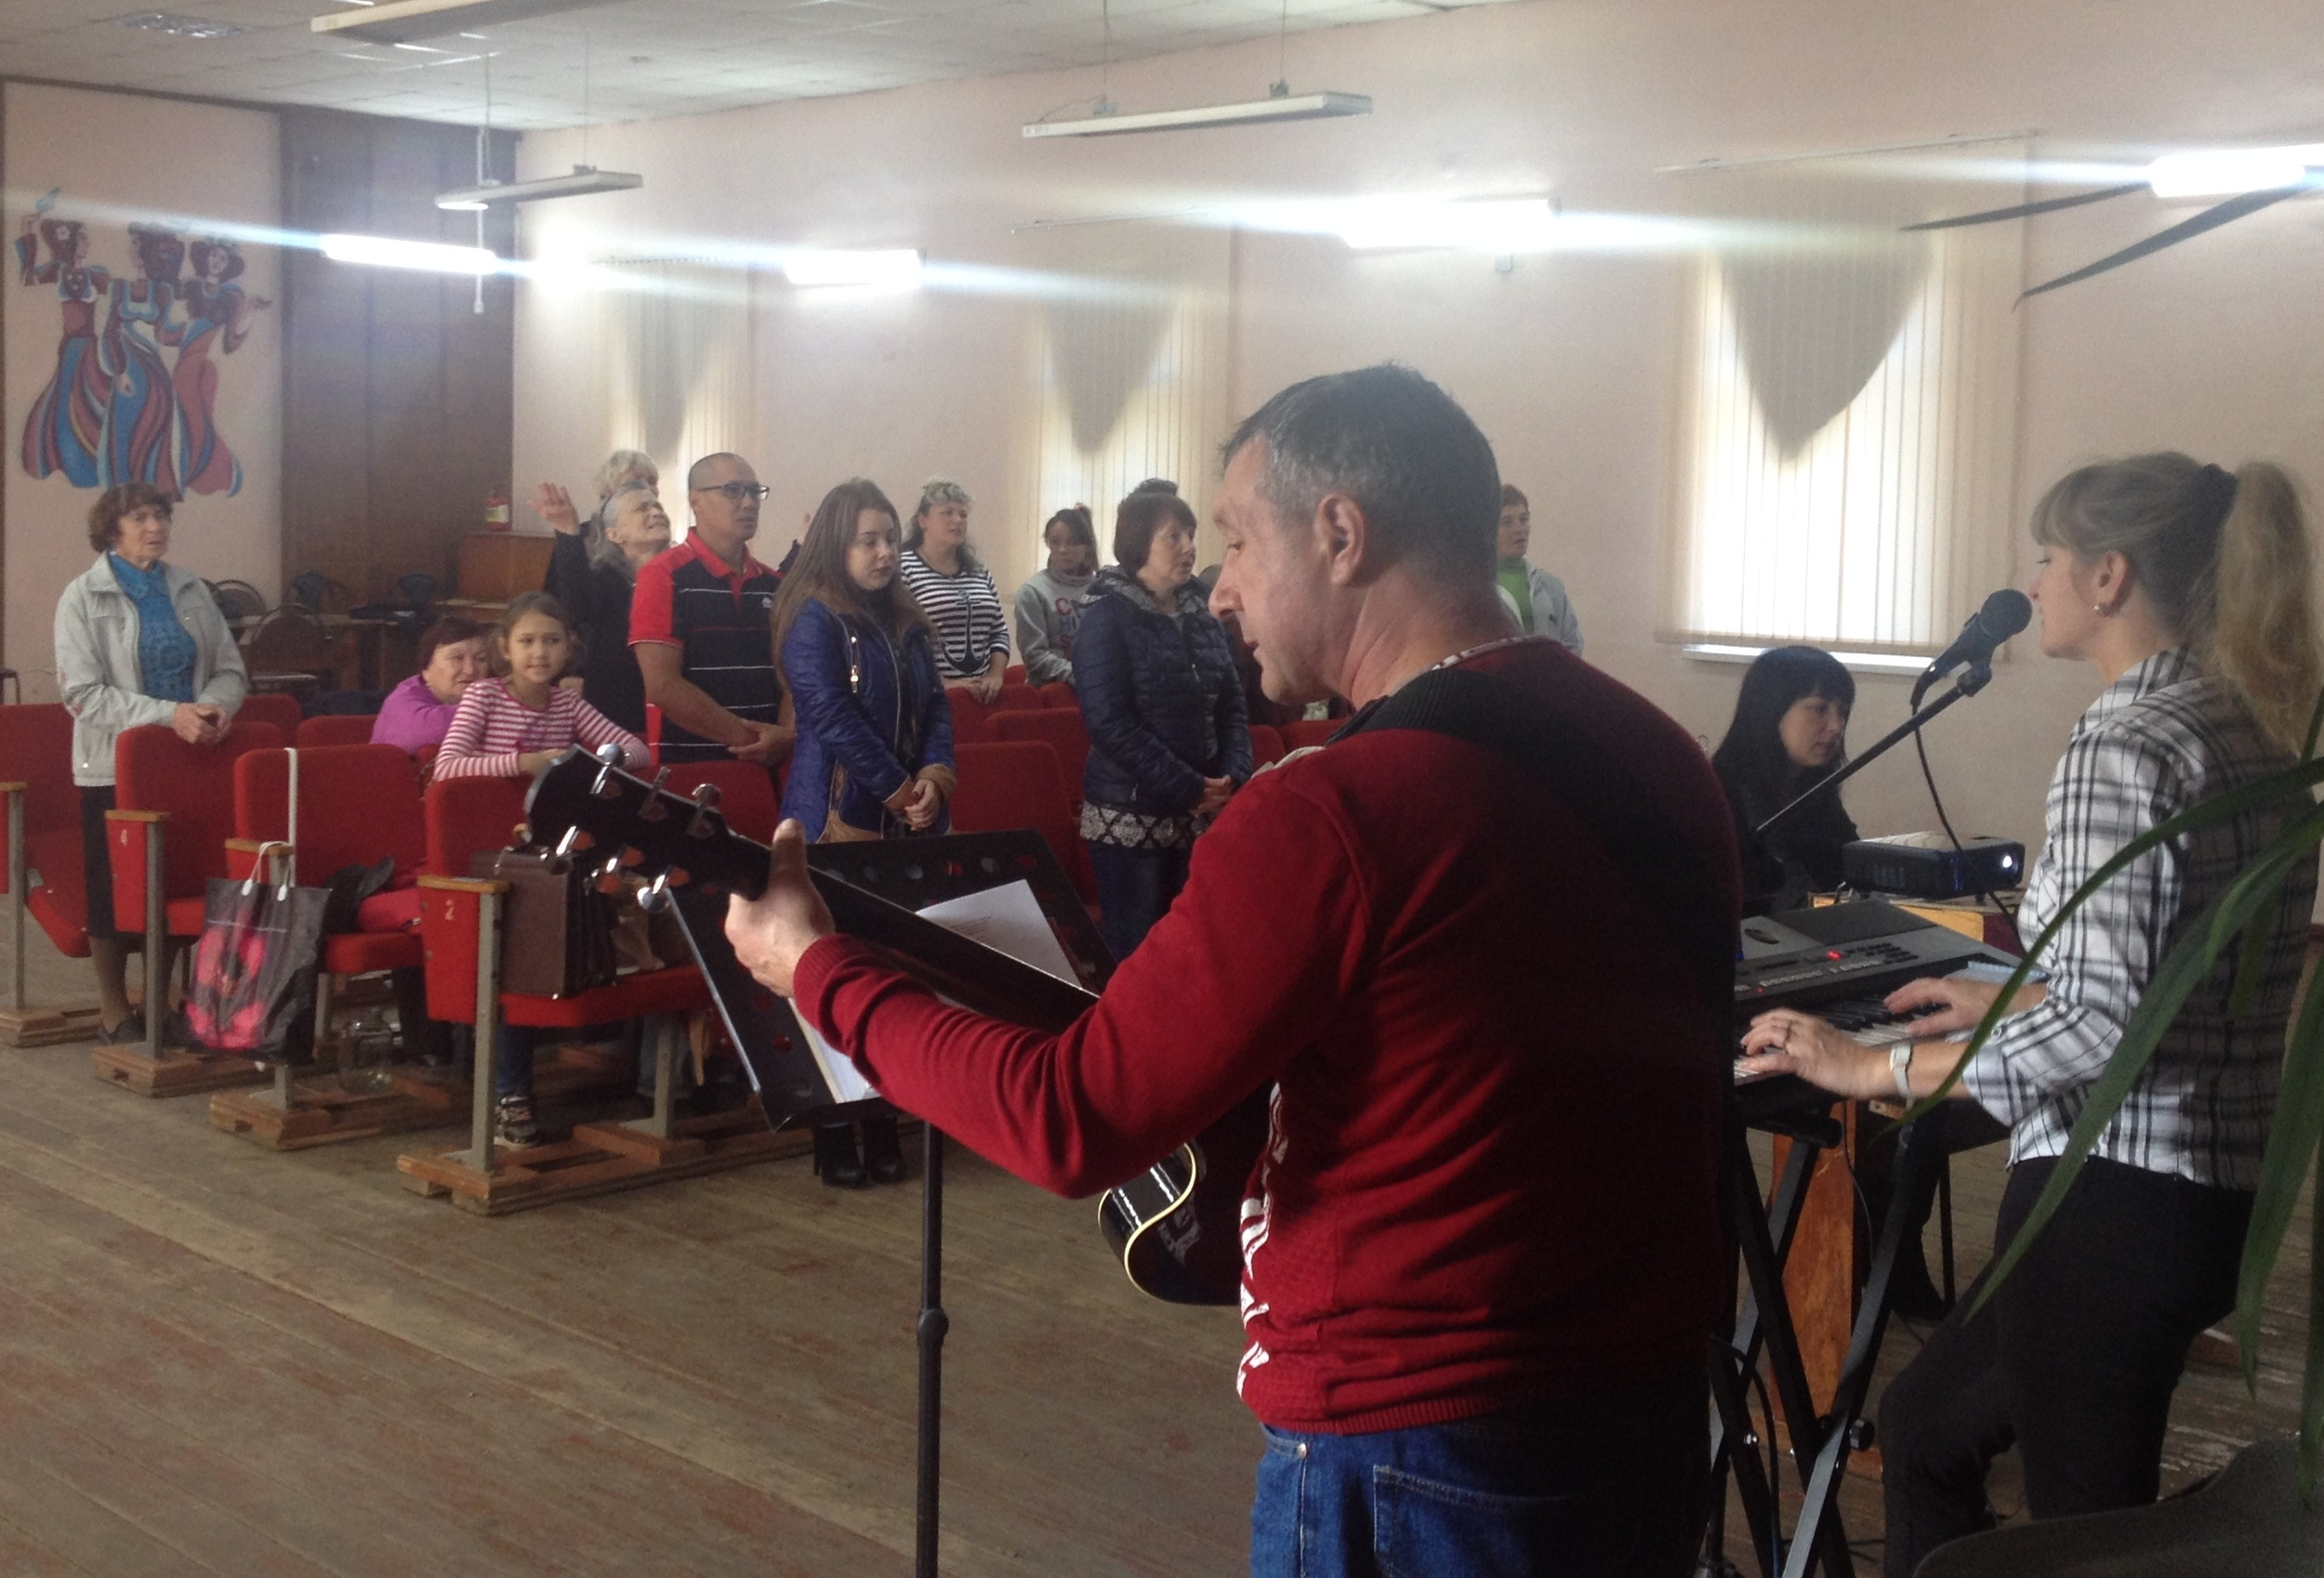 Singing Psalms before the worship service.